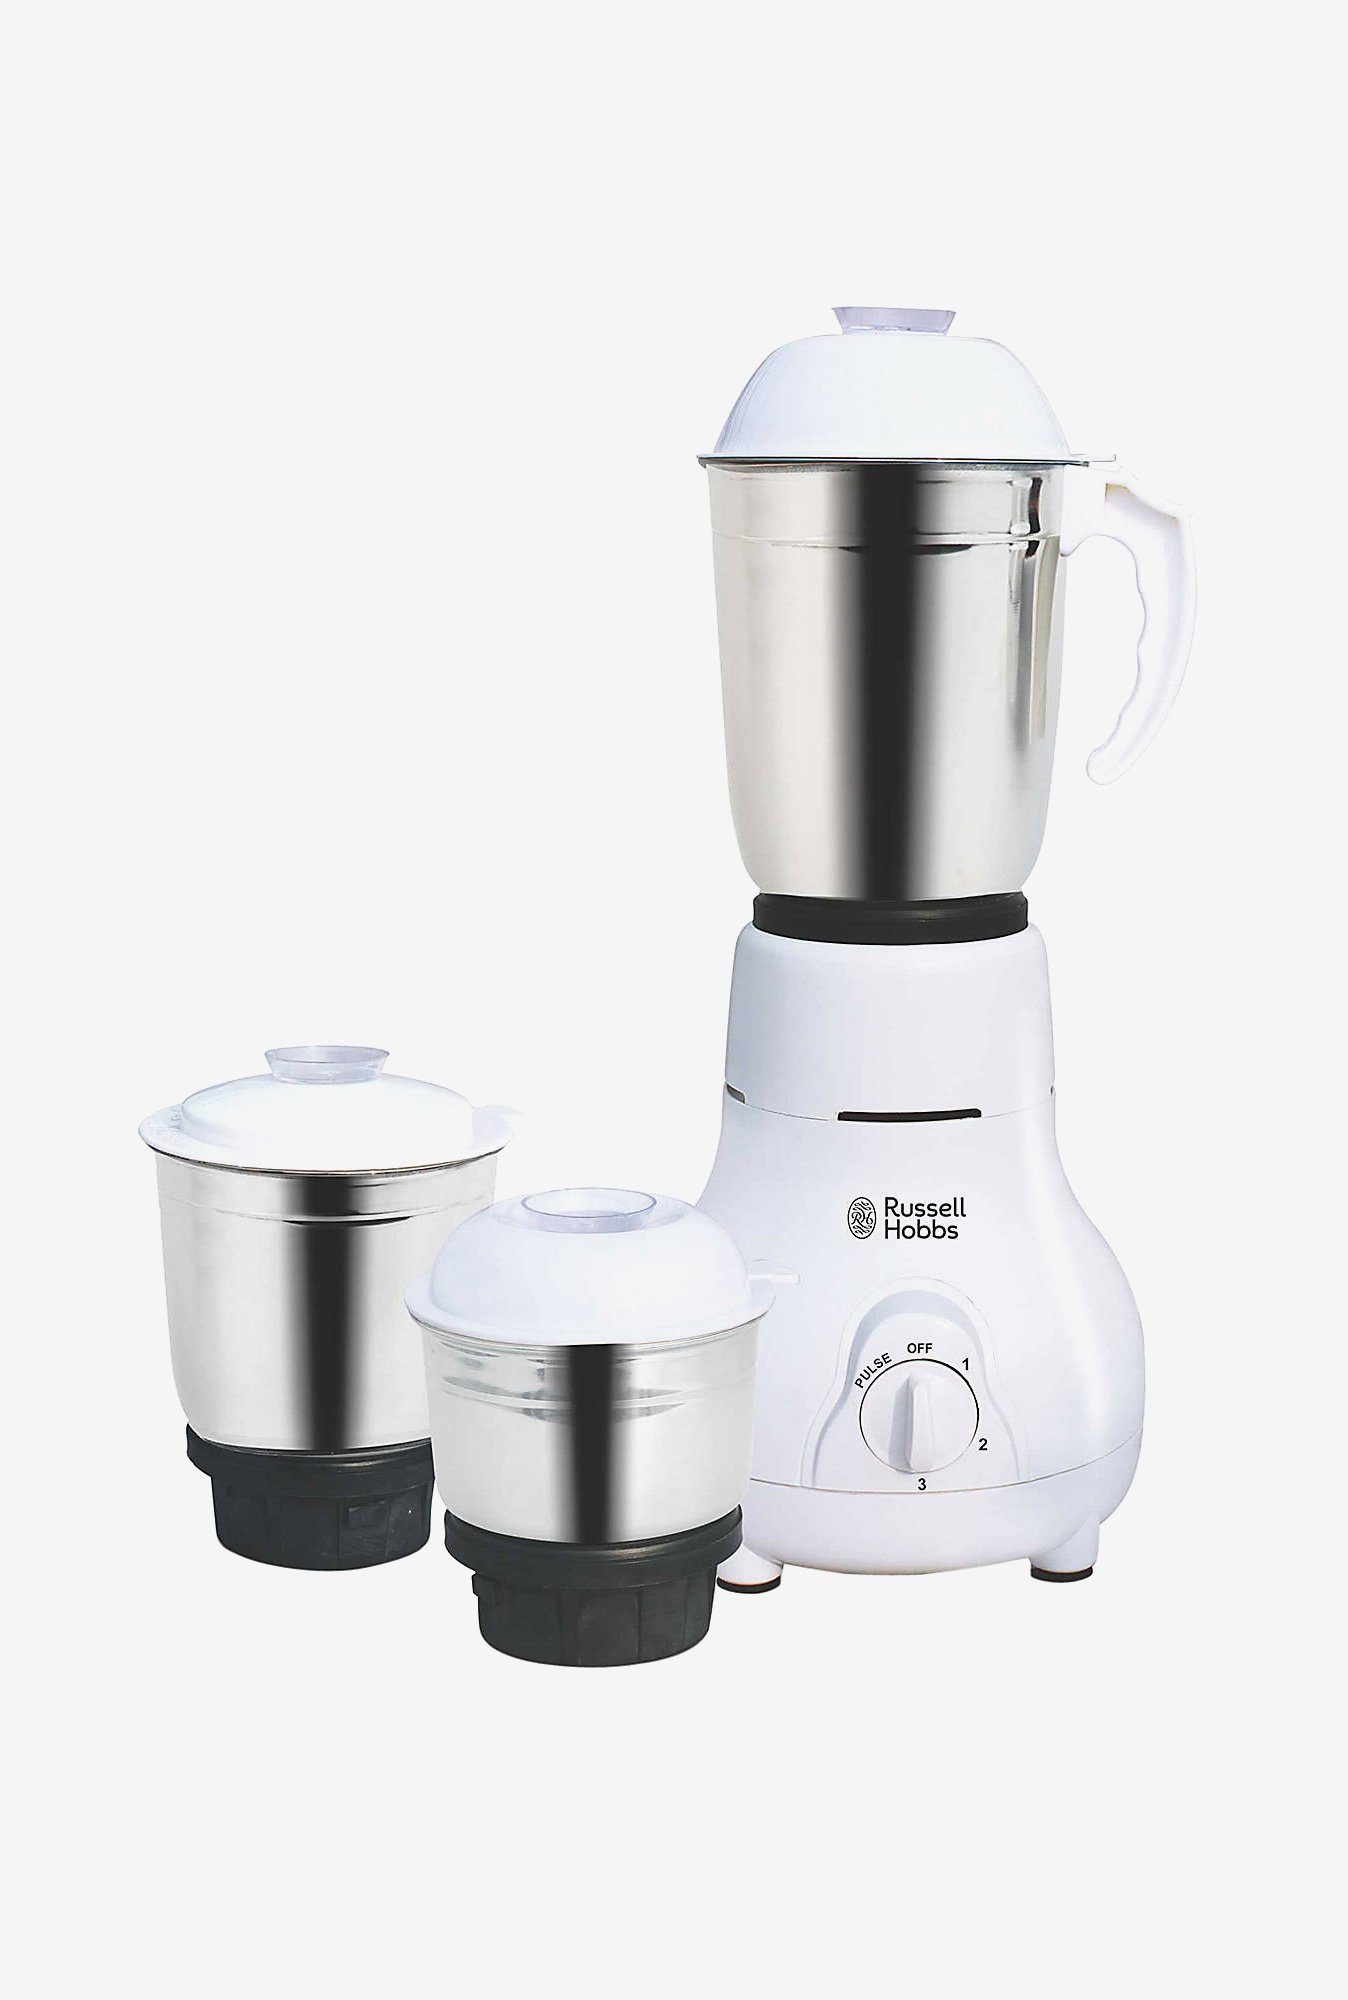 Russell Hobbs RMG500EX 550 W Mixer Grinder (White)